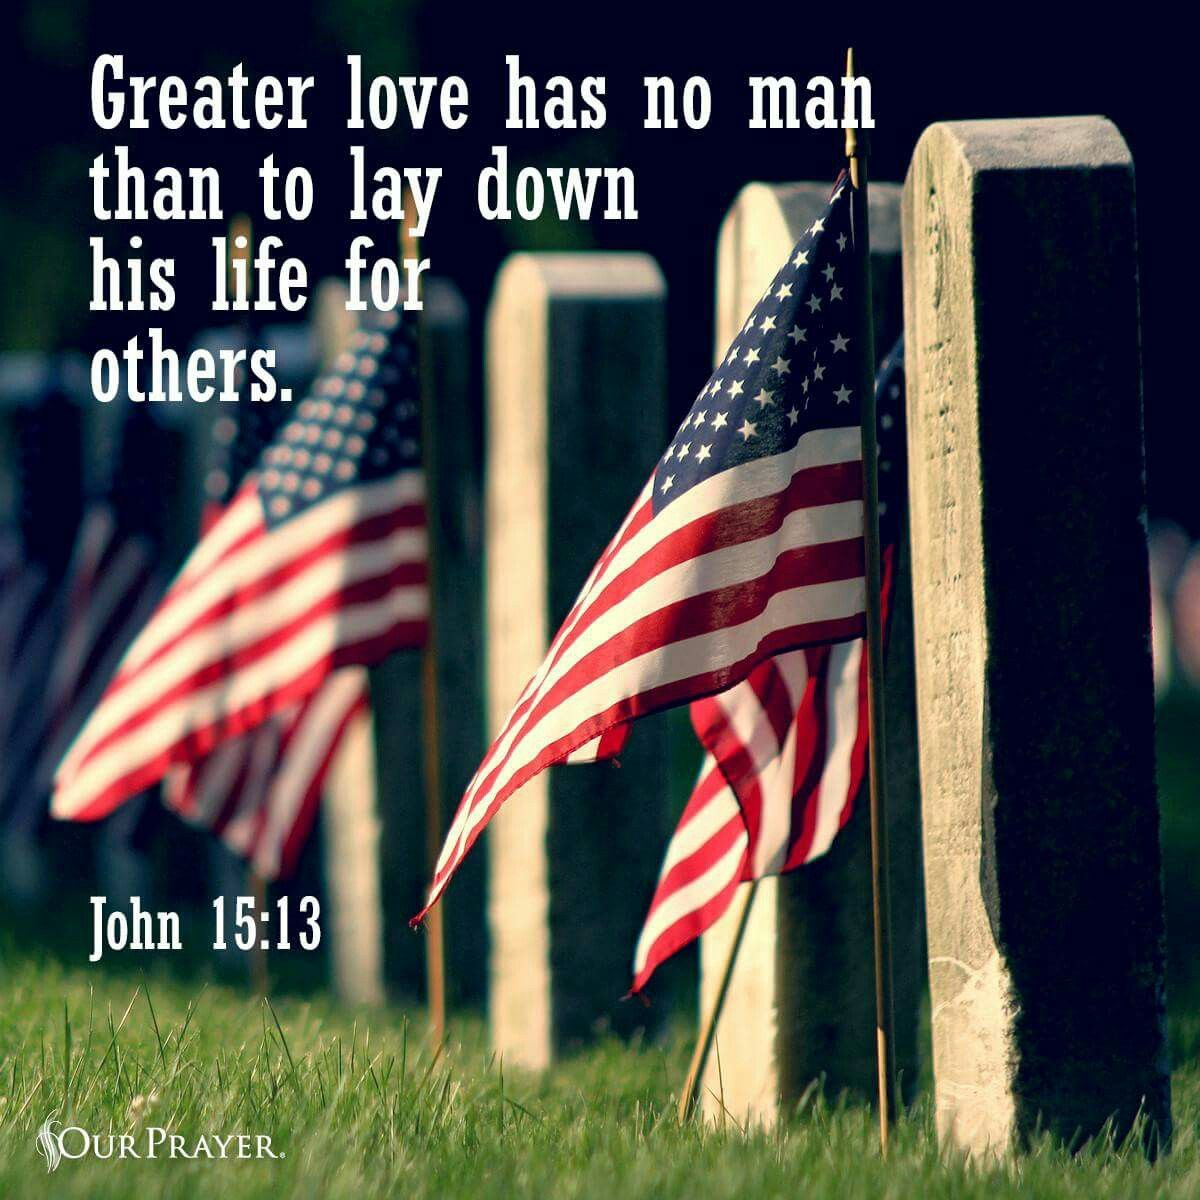 Memorial Day Bible Quotes: Patriotic Photos, Quotes And More